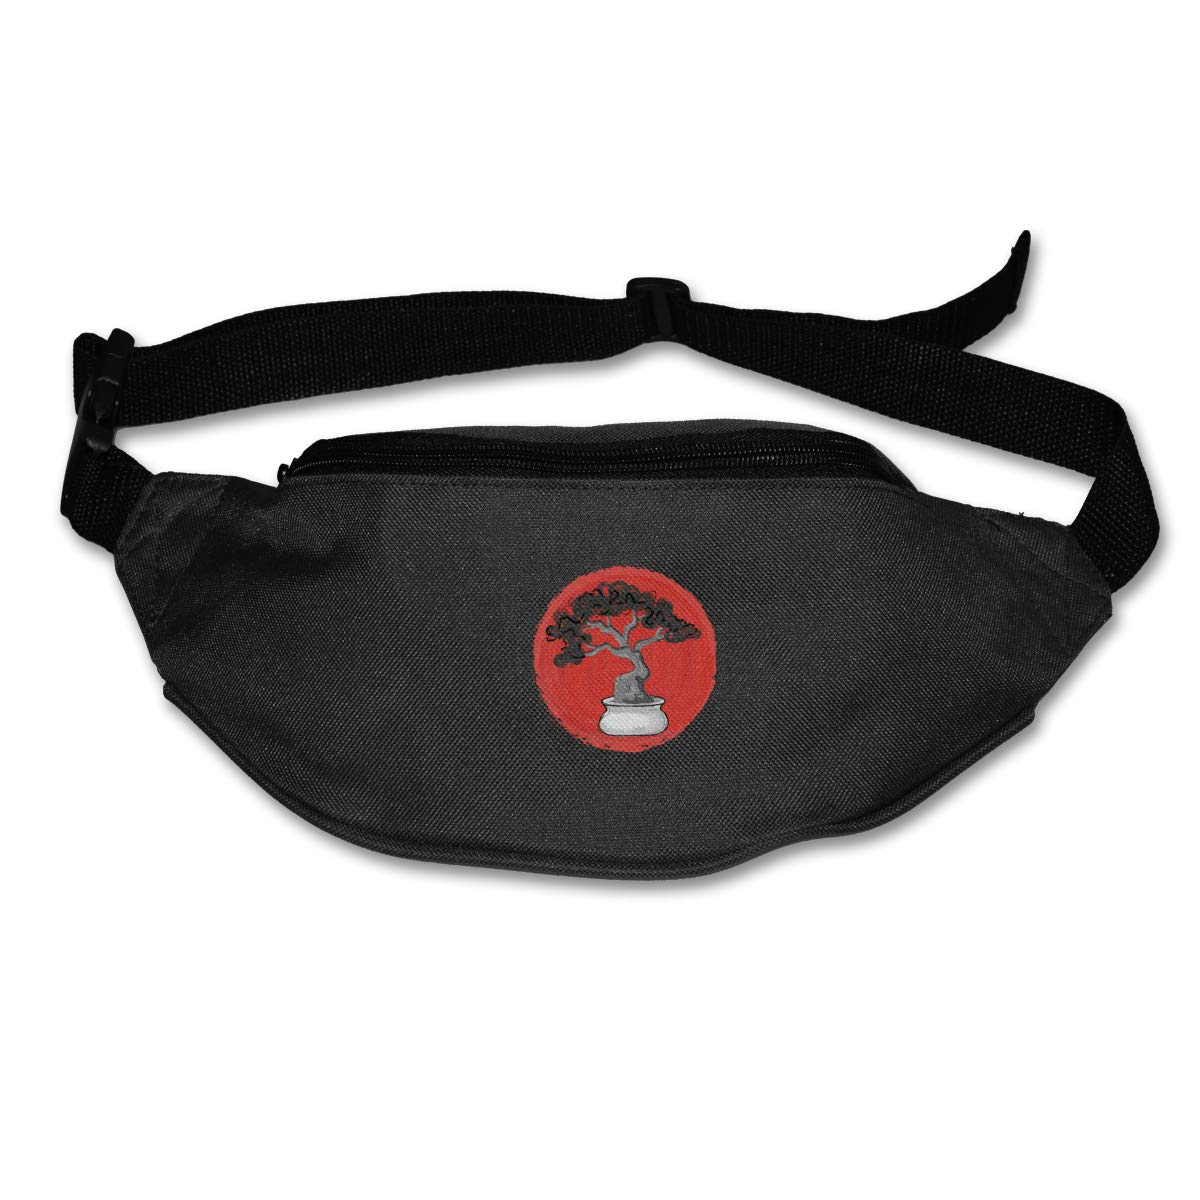 Bonsai Tree Sport Waist Packs Fanny Pack Adjustable For Run